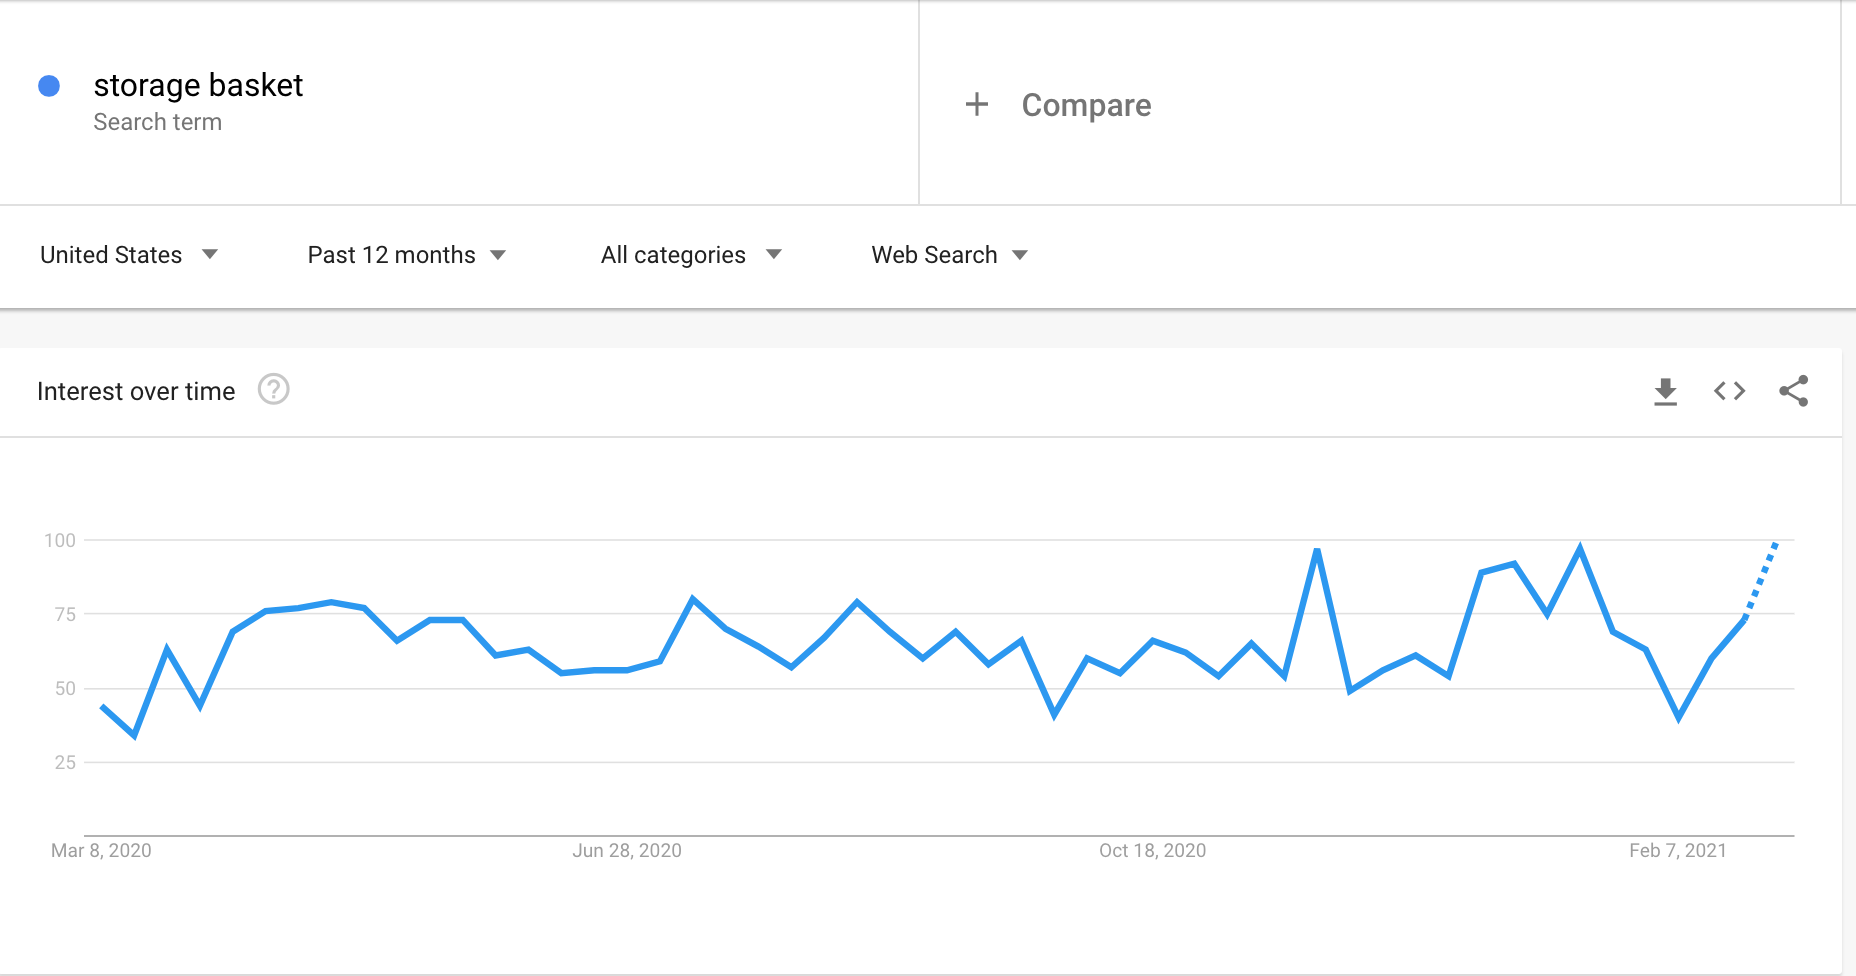 Google Trends graph showing the interest in storage baskets